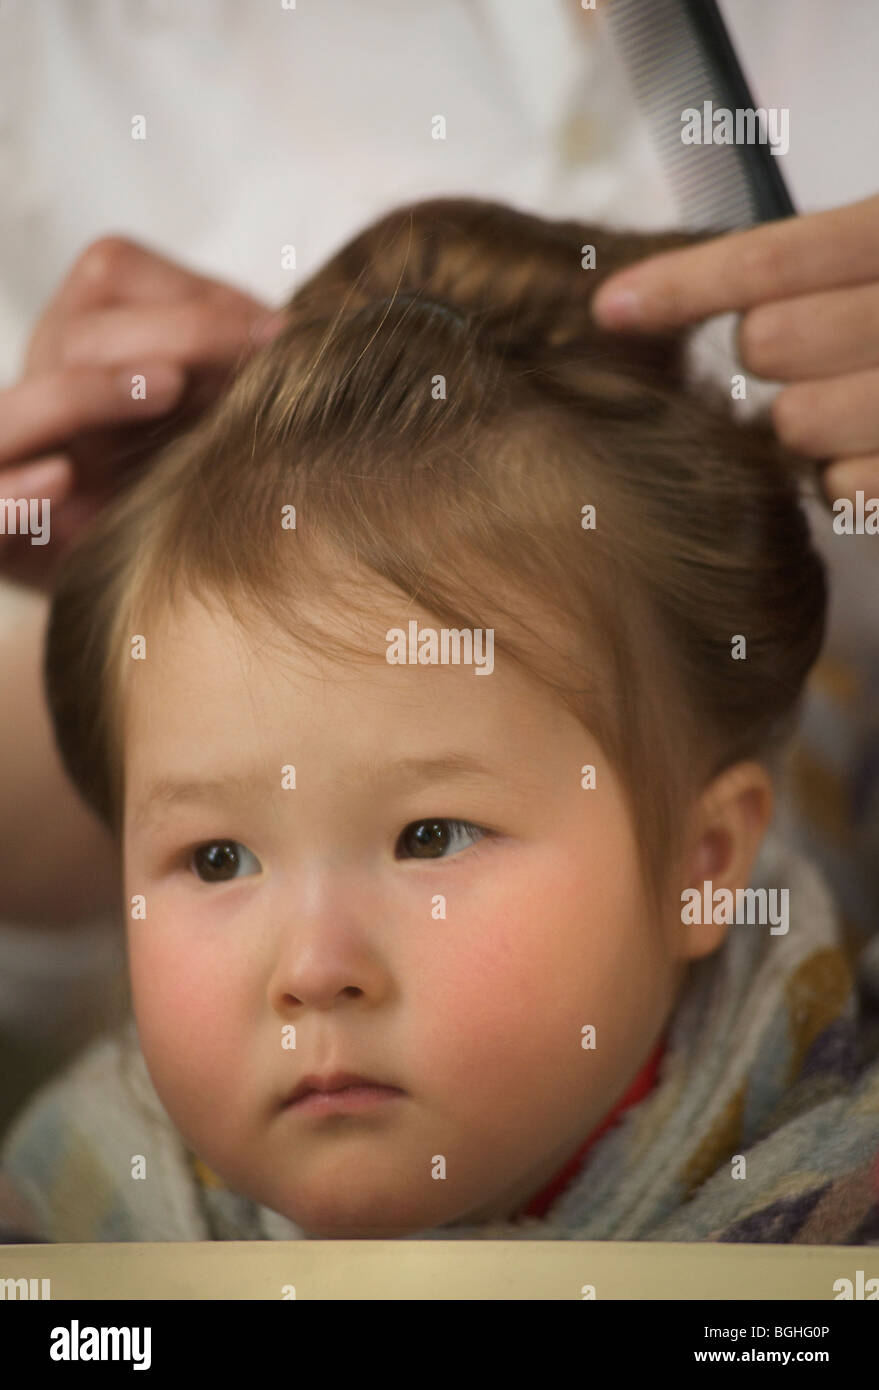 Two year old girl having her hair styled. - Stock Image